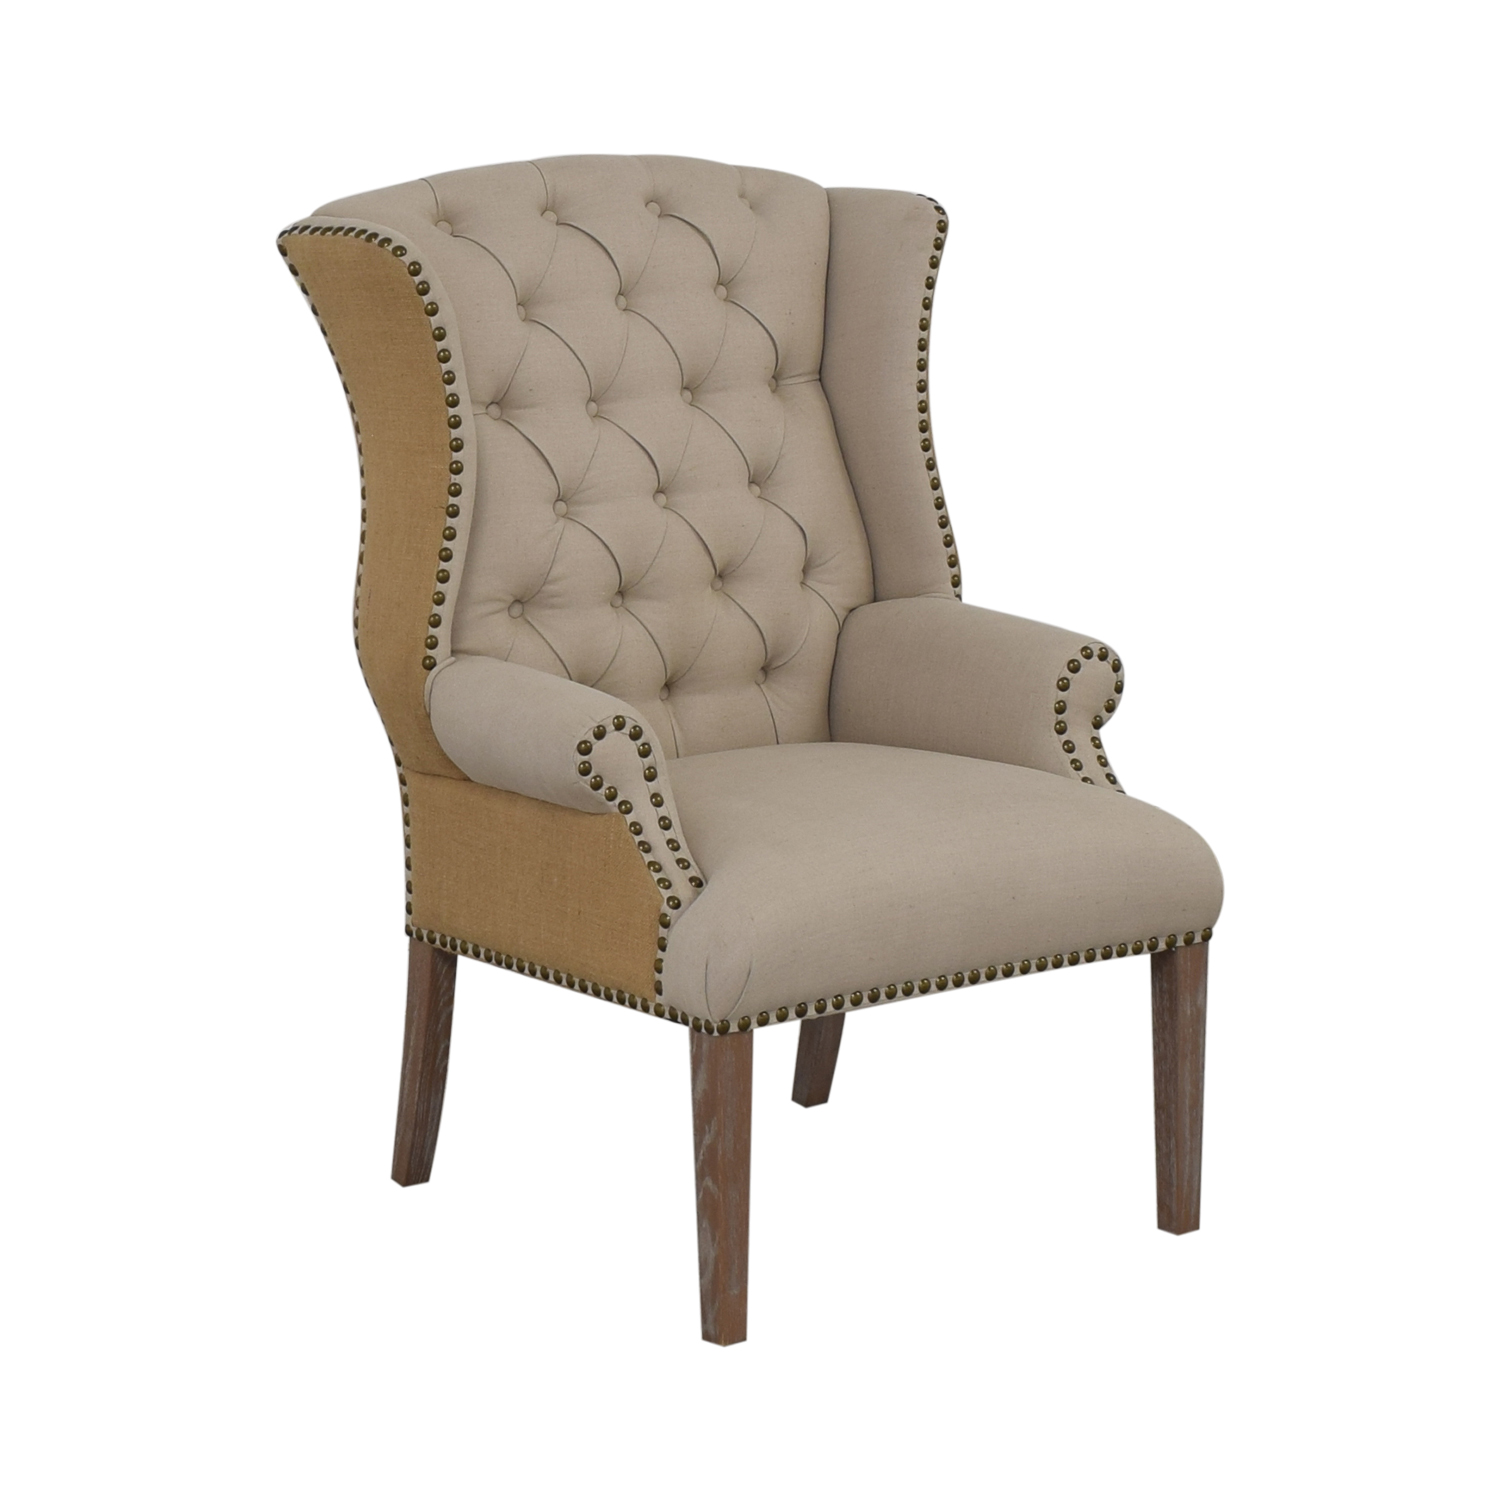 buy Hickory Chair Hickory Chair Traditional Lounge Chair online